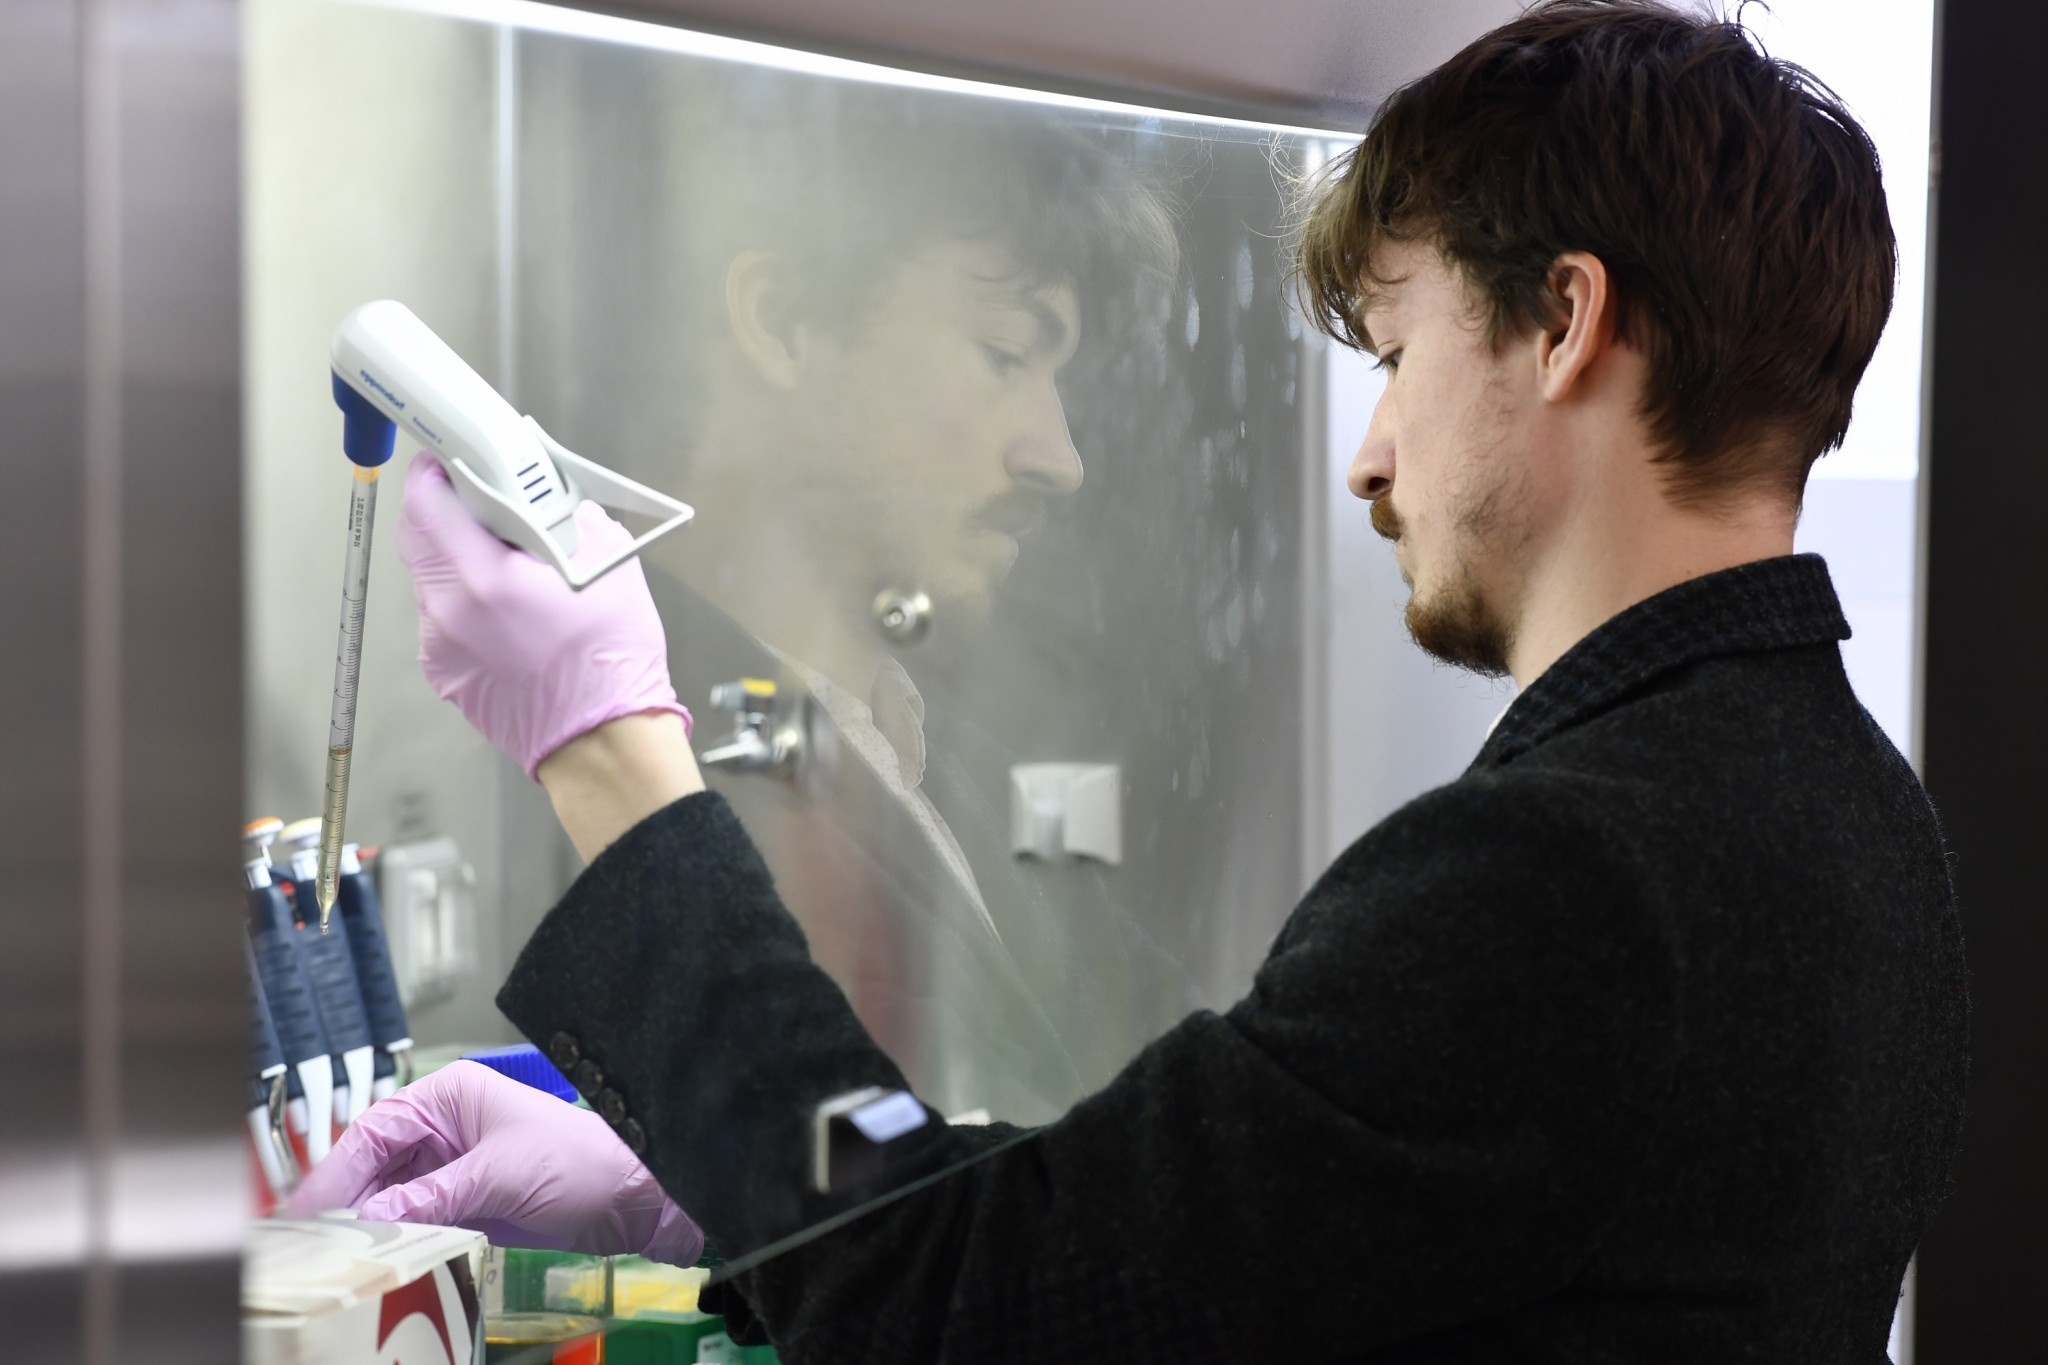 Luis pictured in the lab. Photo: Skoltech.